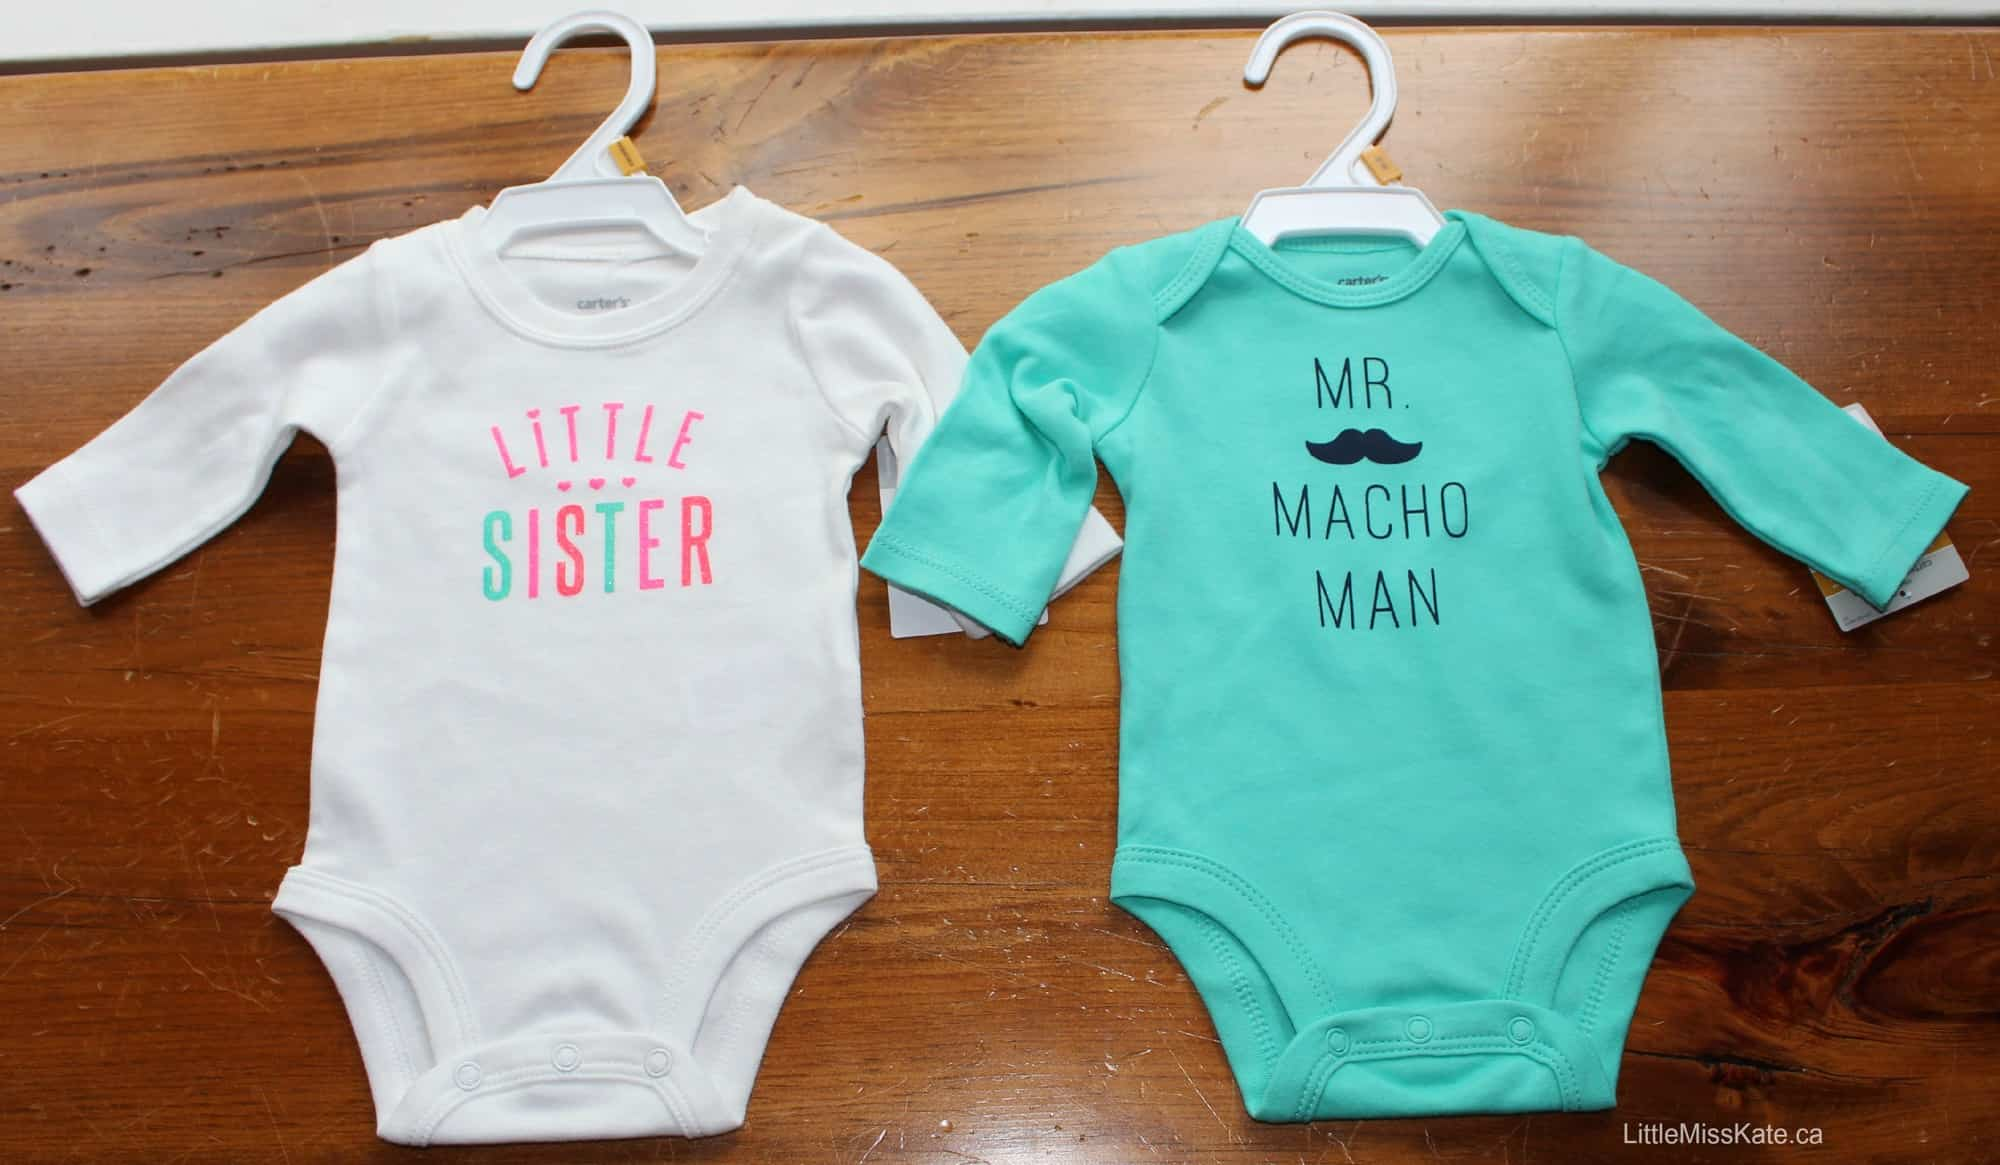 Just Had A Baby Gift Ideas : Baby shower gift ideas little miss kate